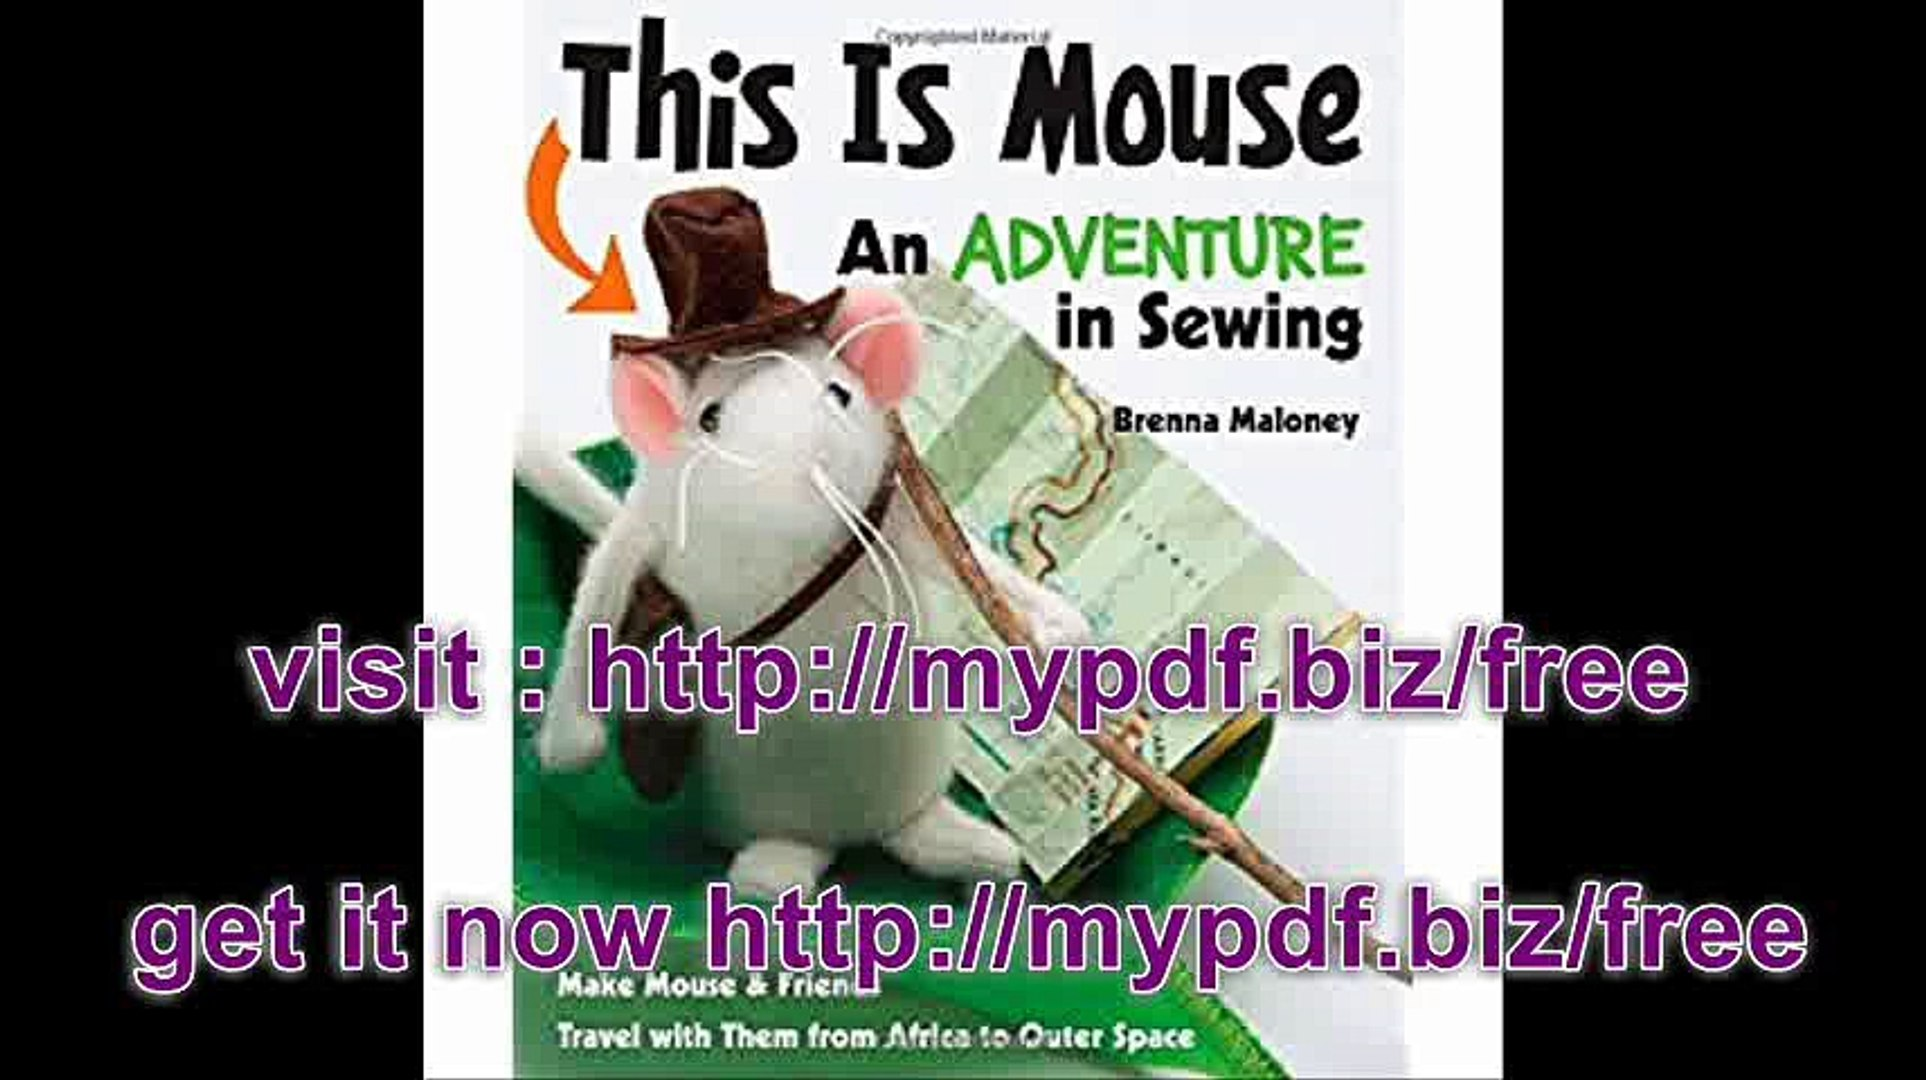 This Is Mouse - An Adventure in Sewing Make Mouse & Friends � Travel with Them from Africa to